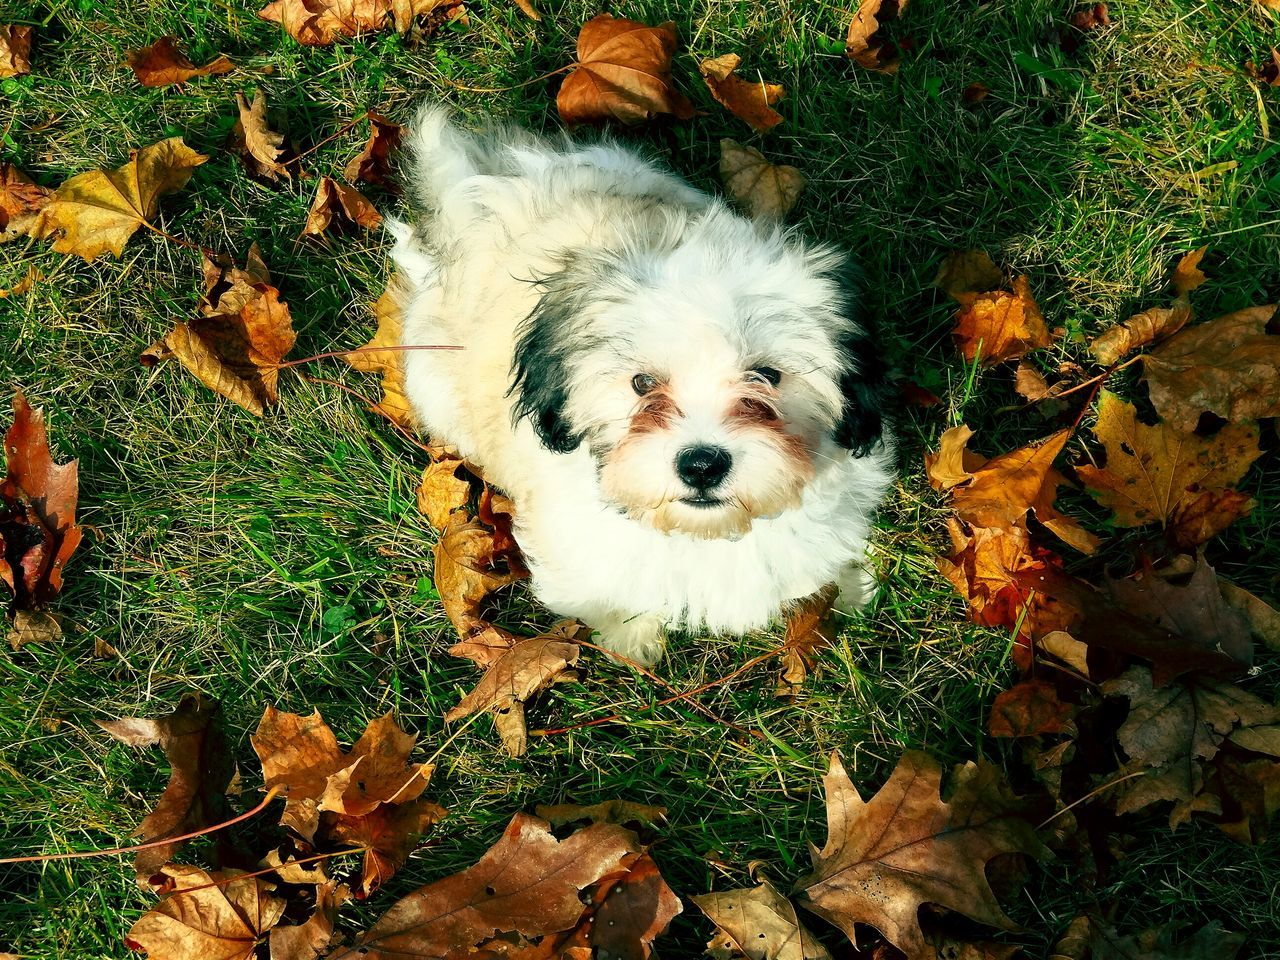 Creative Light And Shadow Puppy Adorable Nature Lover Who Me? Too Cute My Pet EyeEm Nature Lover Pet Portrait Playing In The Leaves TakeoverContrast